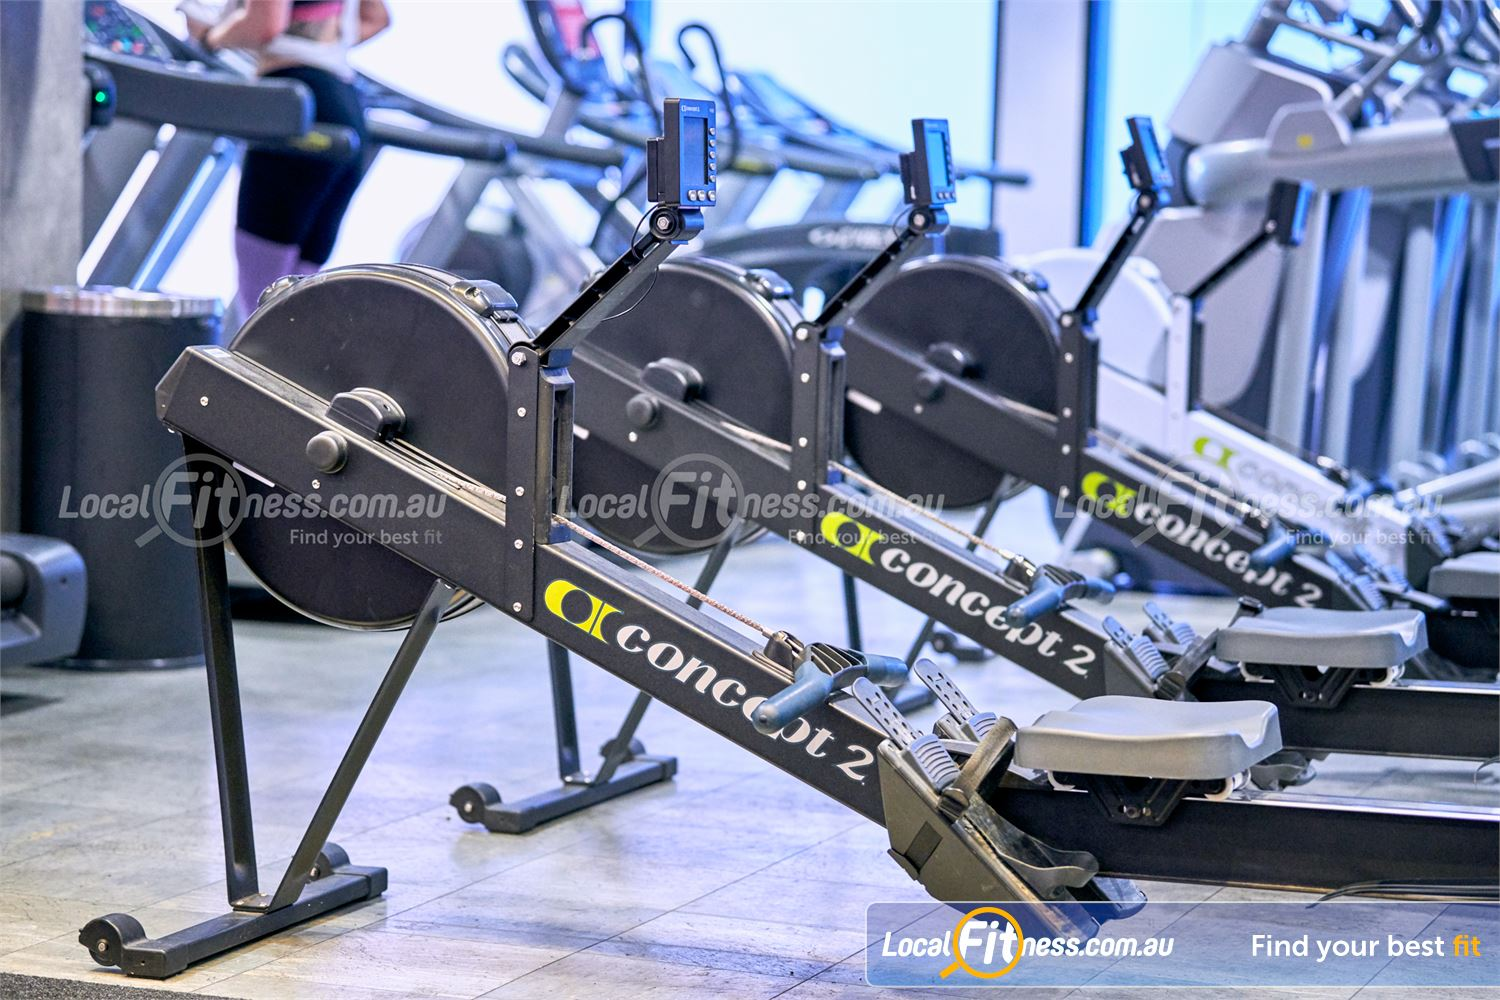 Fitness First Victoria Gardens Near South Yarra Rows of cardio machines including the Concept 2 rower.